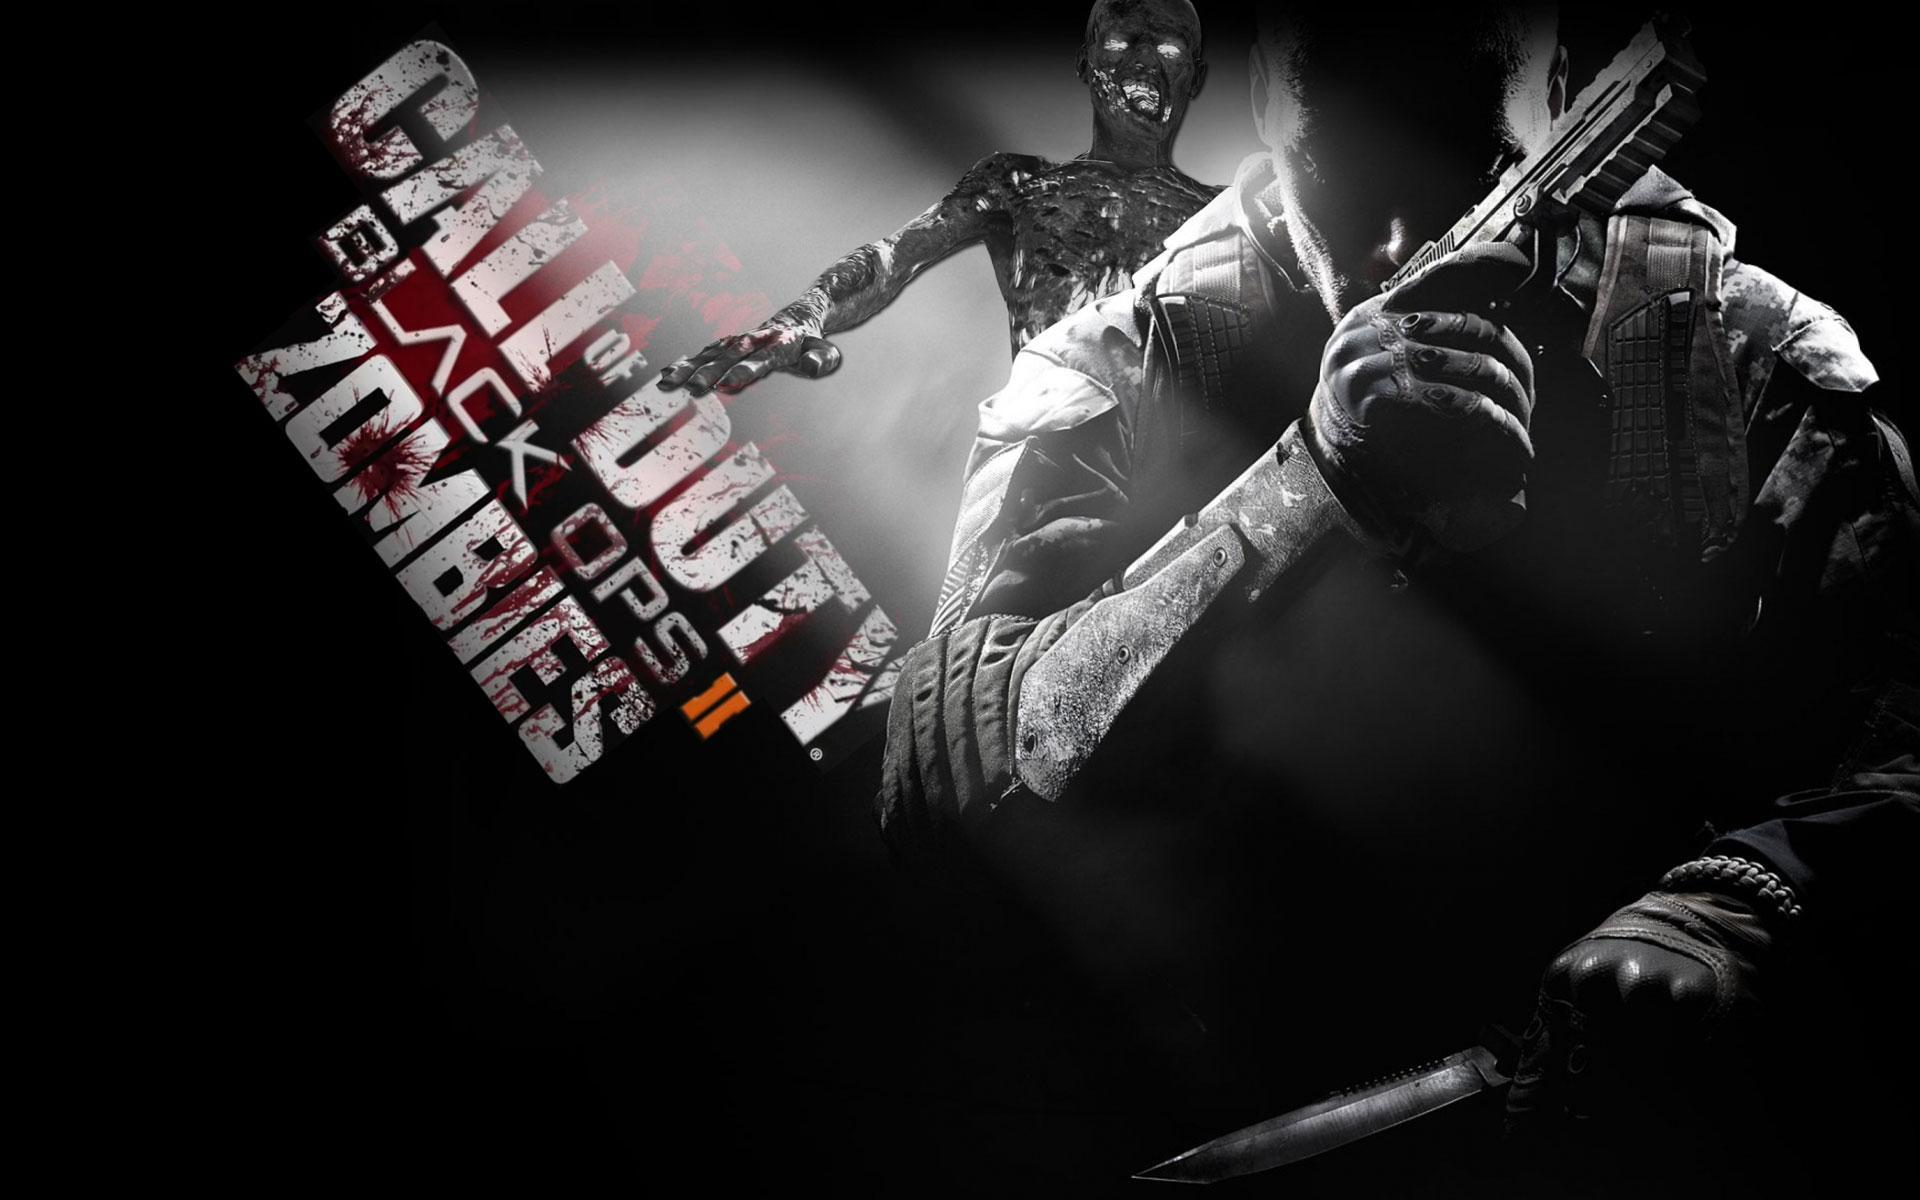 zombies wallpapercall of duty black ops 2 zombies wallpaper 1080p 1920x1200